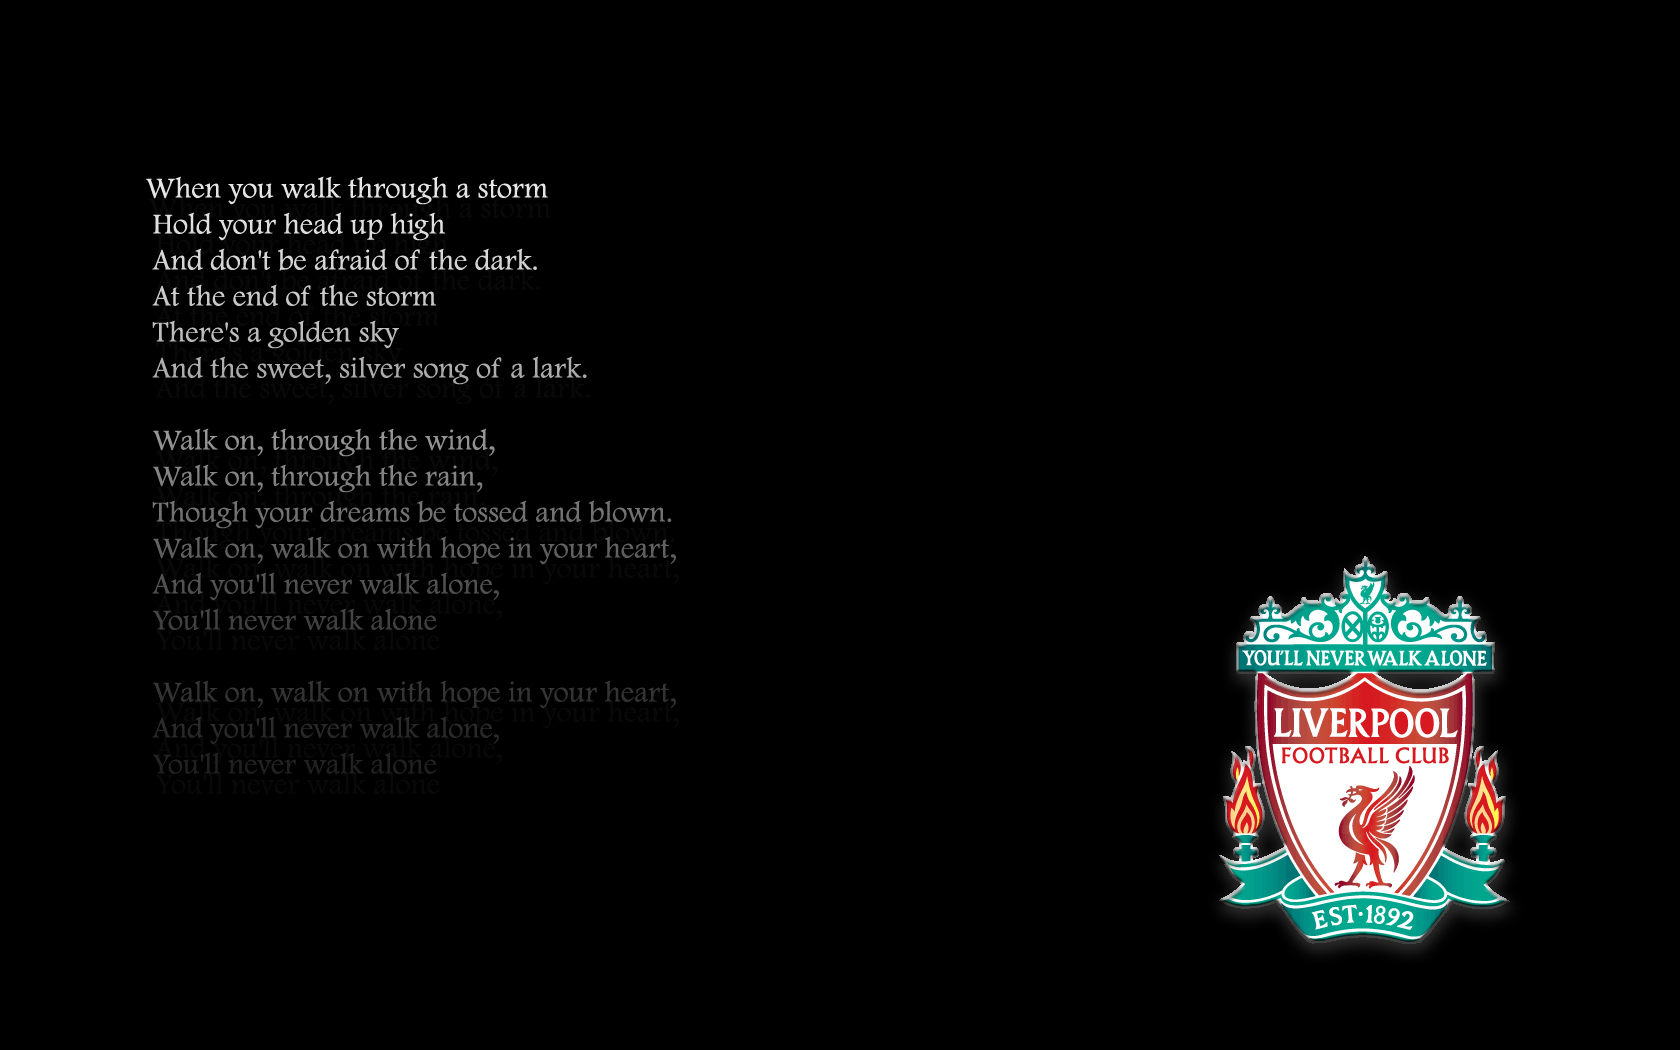 Free Download You Ll Never Walk Alone By Klawatsch 1680x1050 For